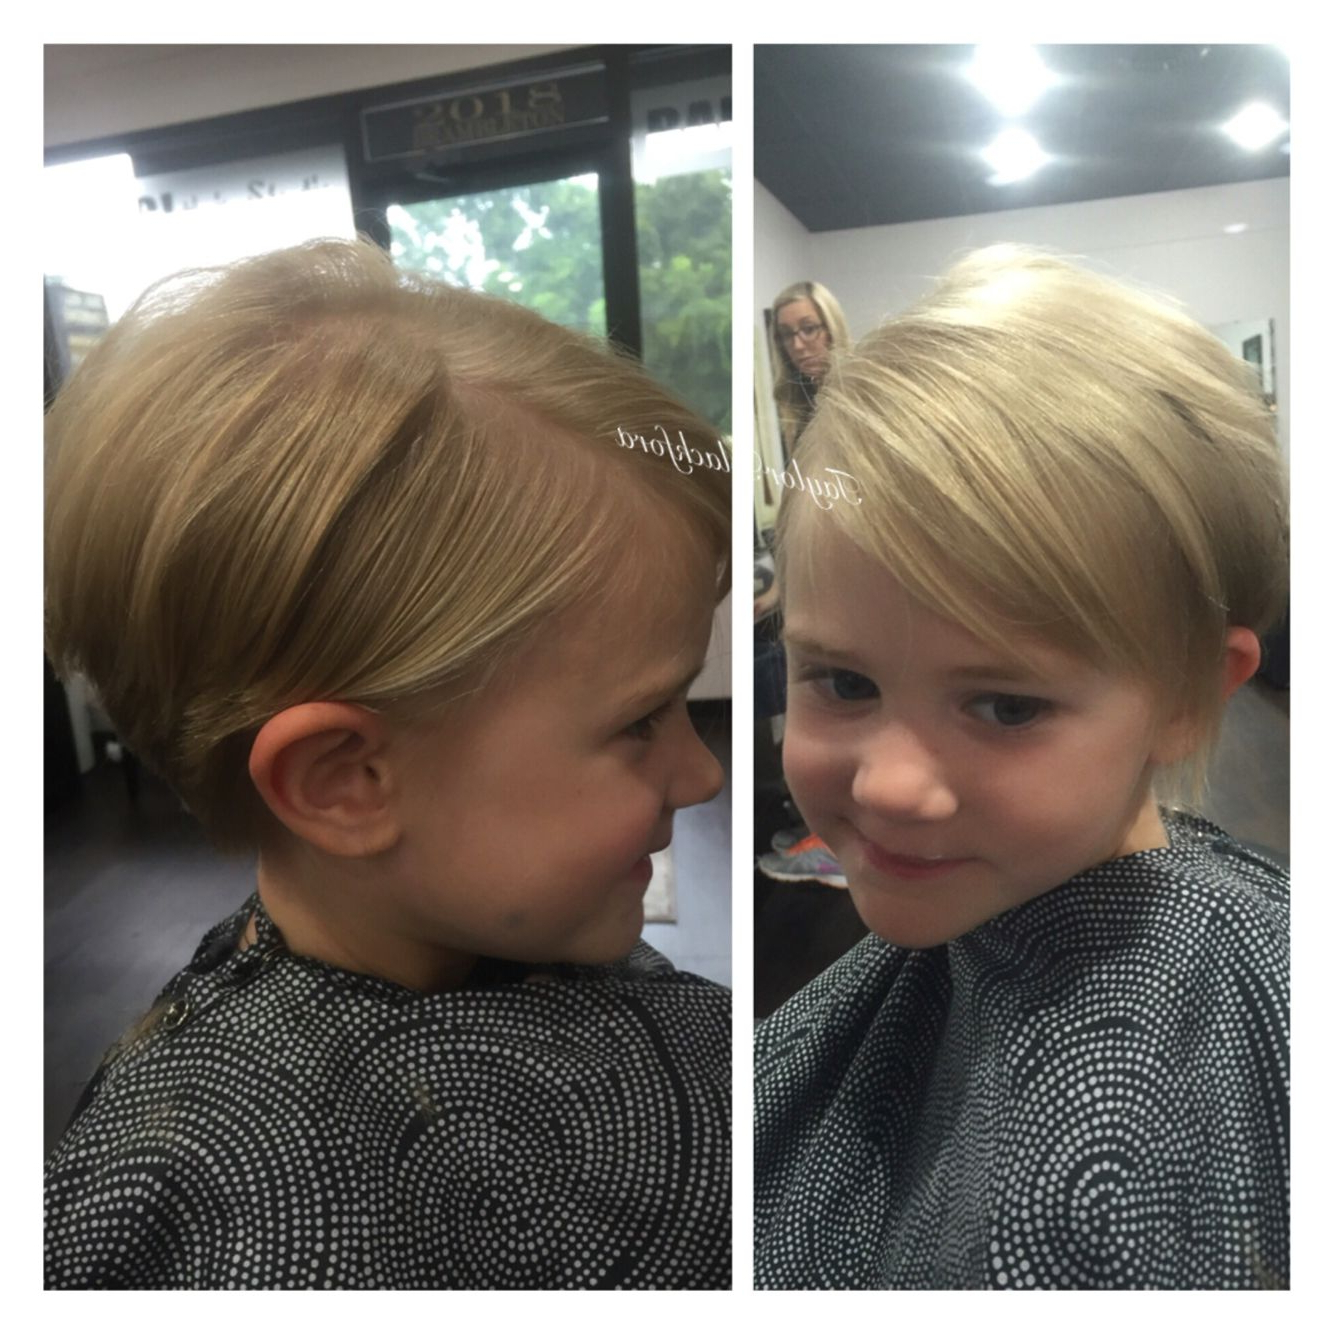 Precious Pixie Cut On This Little Girl! Perfect Haircut For Fine Pertaining To Little Girl Short Hairstyles Pictures (View 11 of 25)